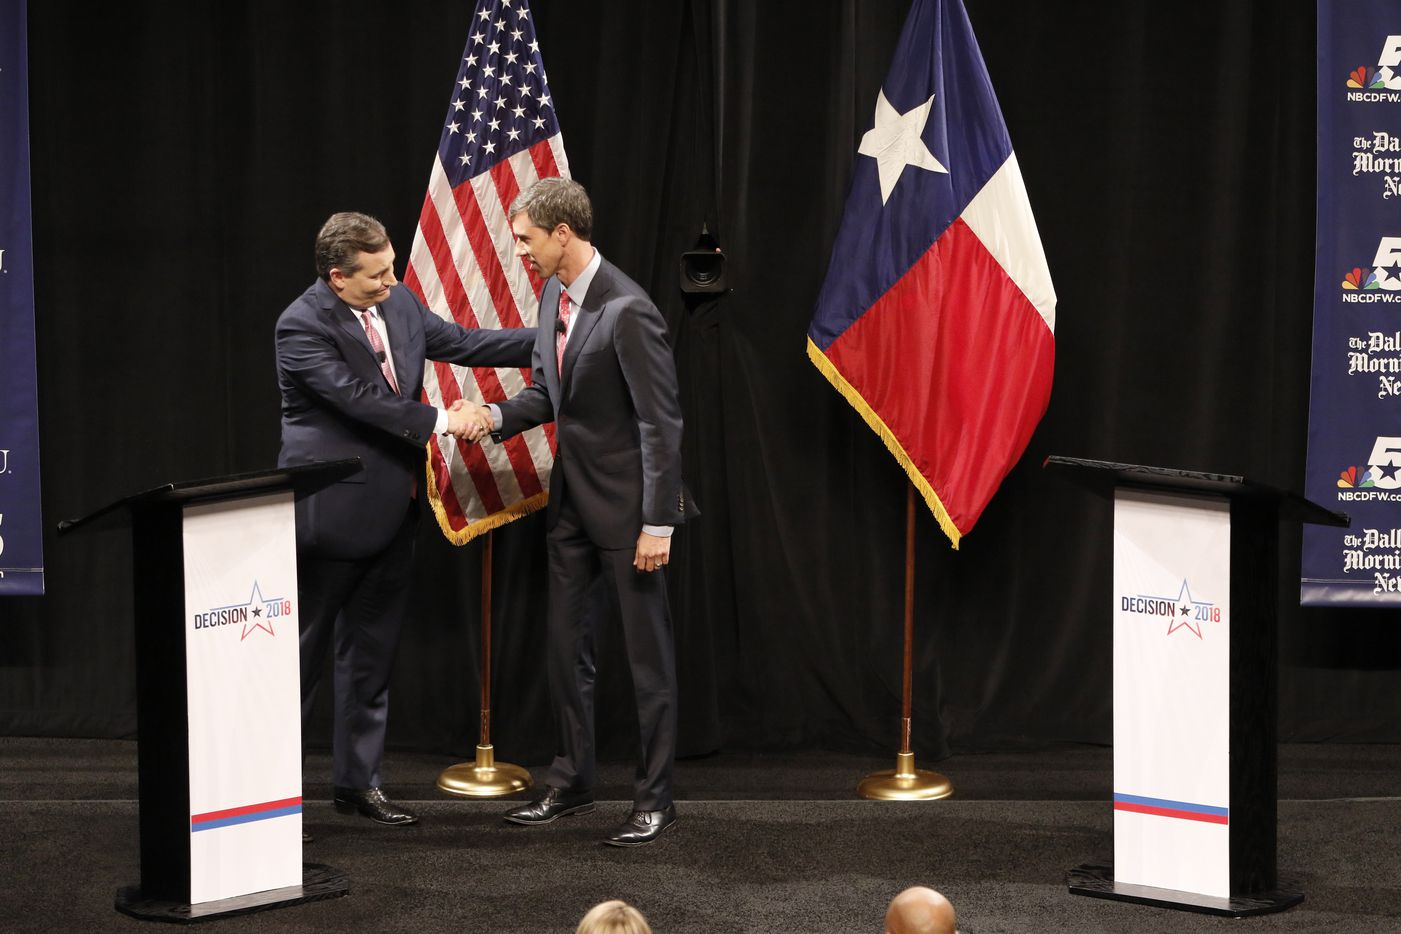 Republican U.S. Senator Ted Cruz and Democratic U.S. Representative Beto O'Rourke in their first debate for Texas U.S. Senate in McFarlin Auditorium at SMU in Dallas on Sept. 21, 2018.